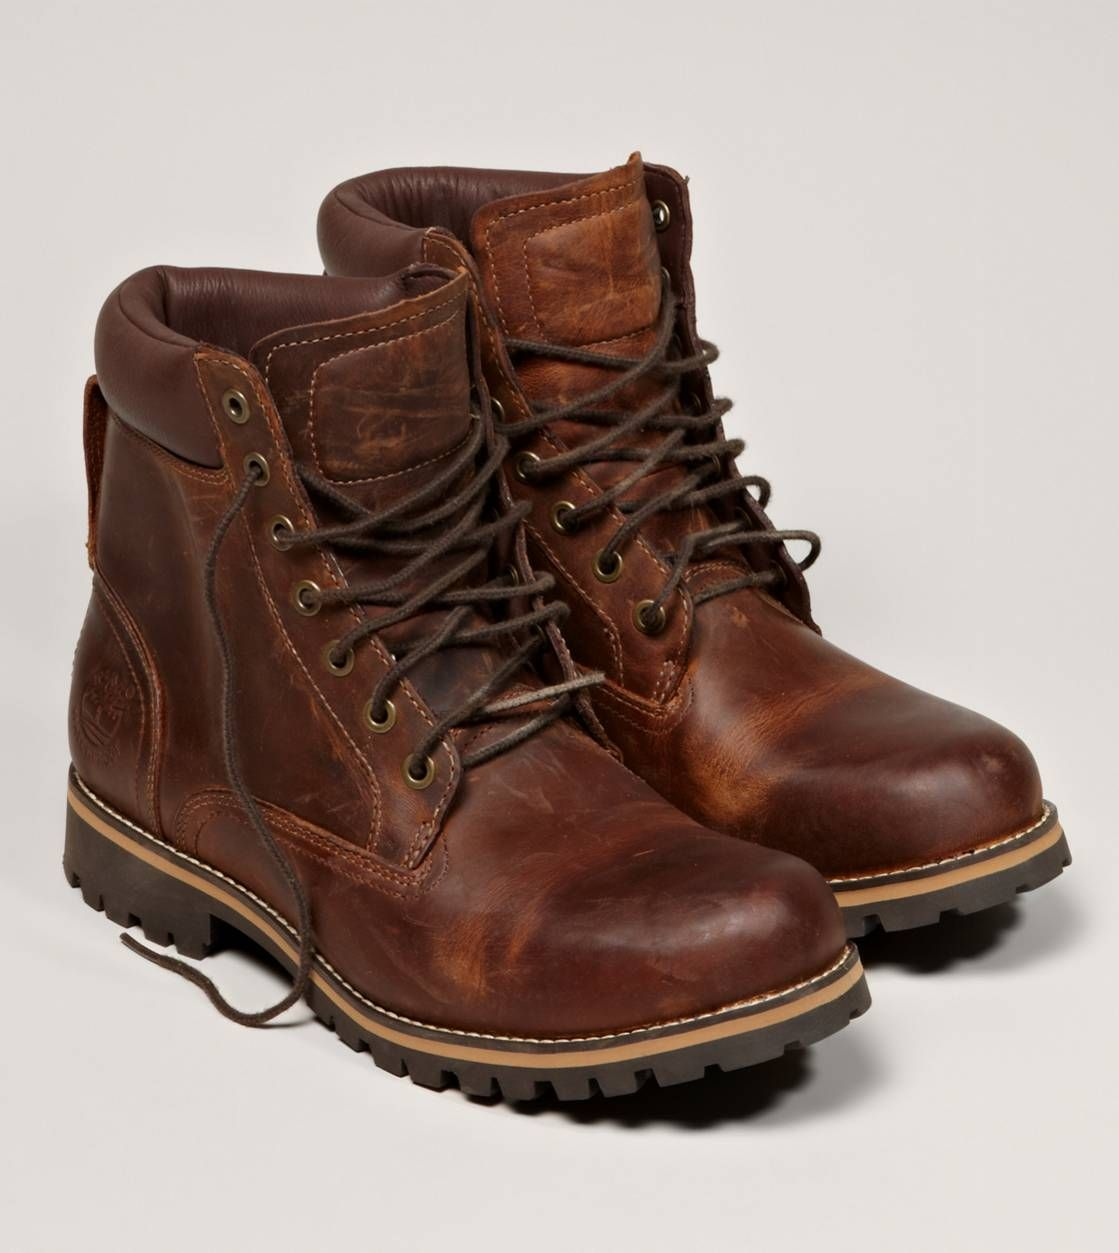 Superior Timberland Earthkeepers Rugged 6 In Waterproof Plain Toe Boot  George F.,  Senior Creative